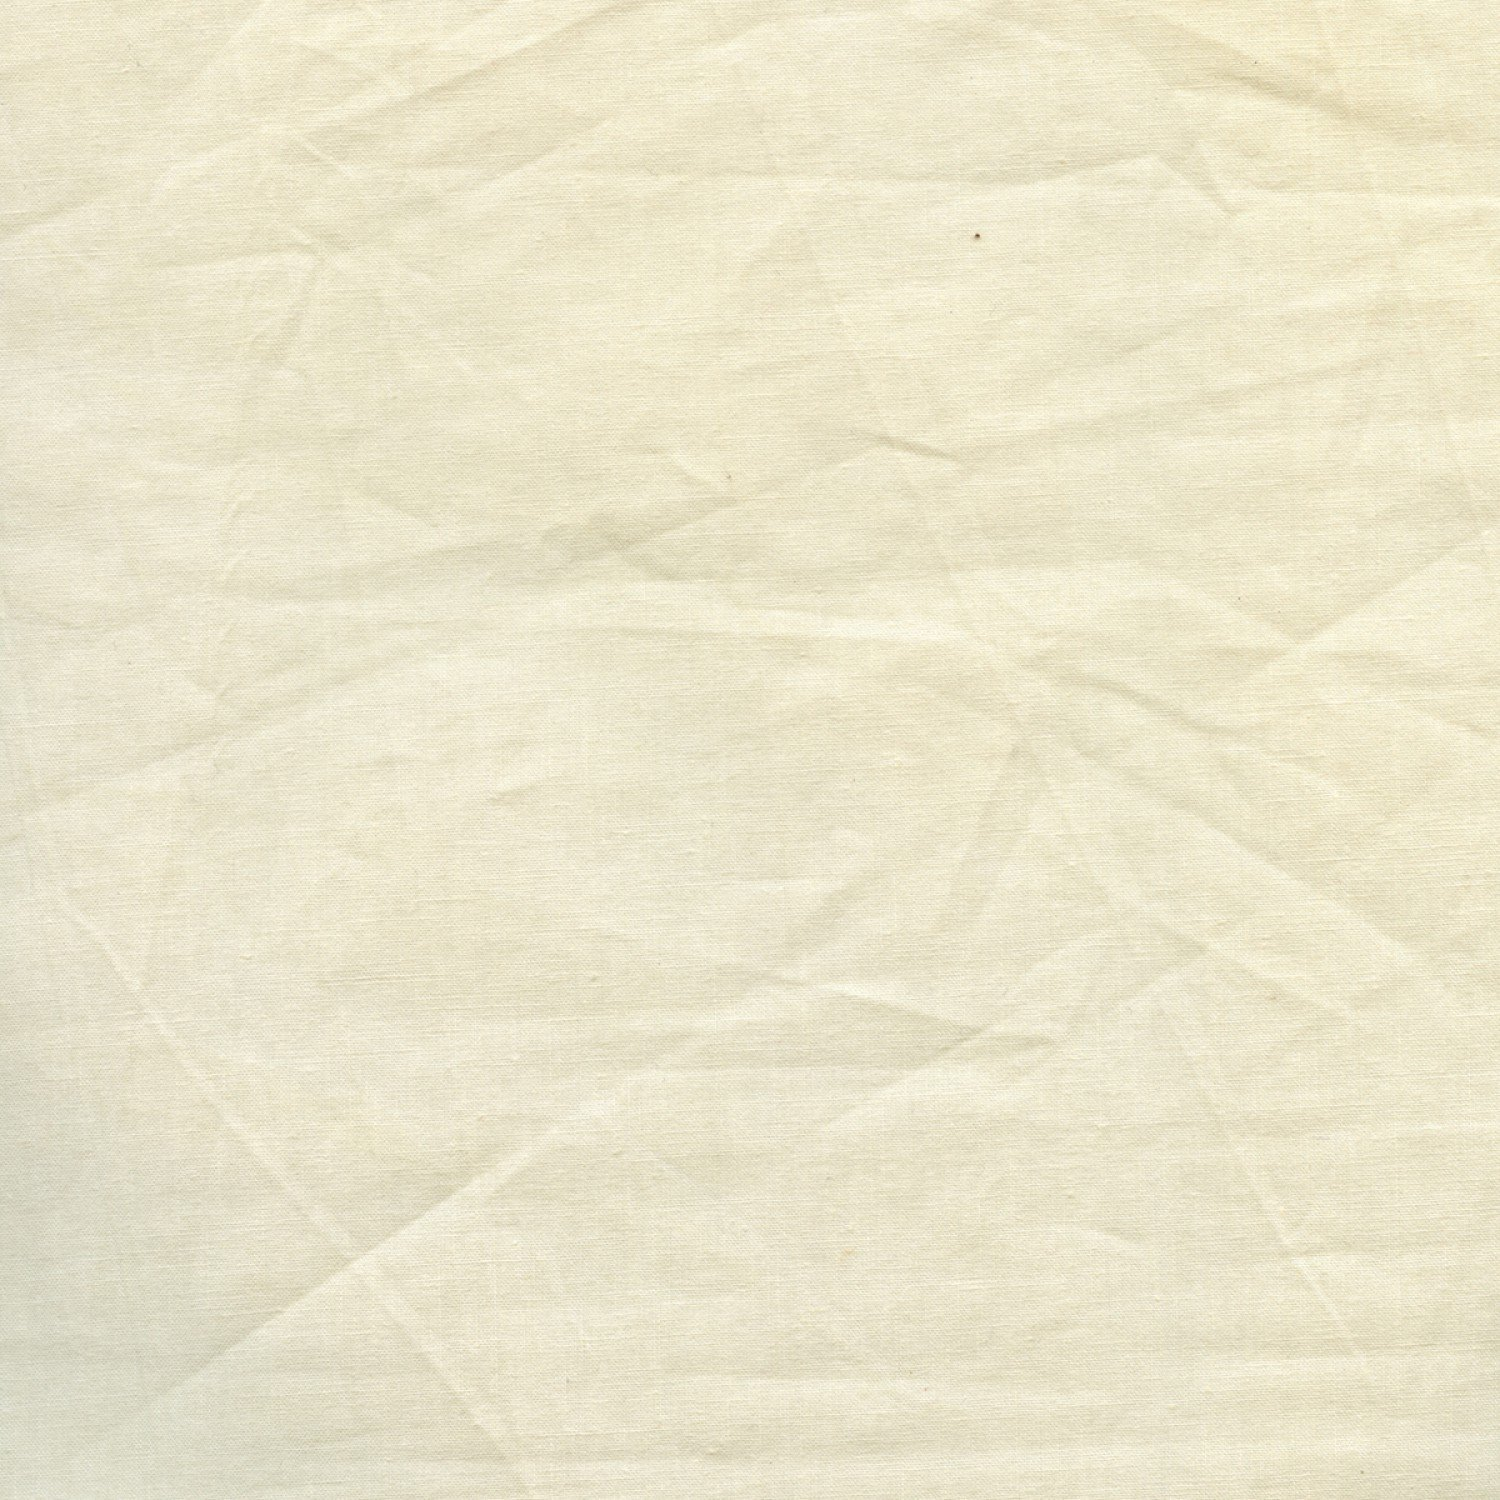 Marcus Fabrics - Aged Muslin - Natural Y138-142D